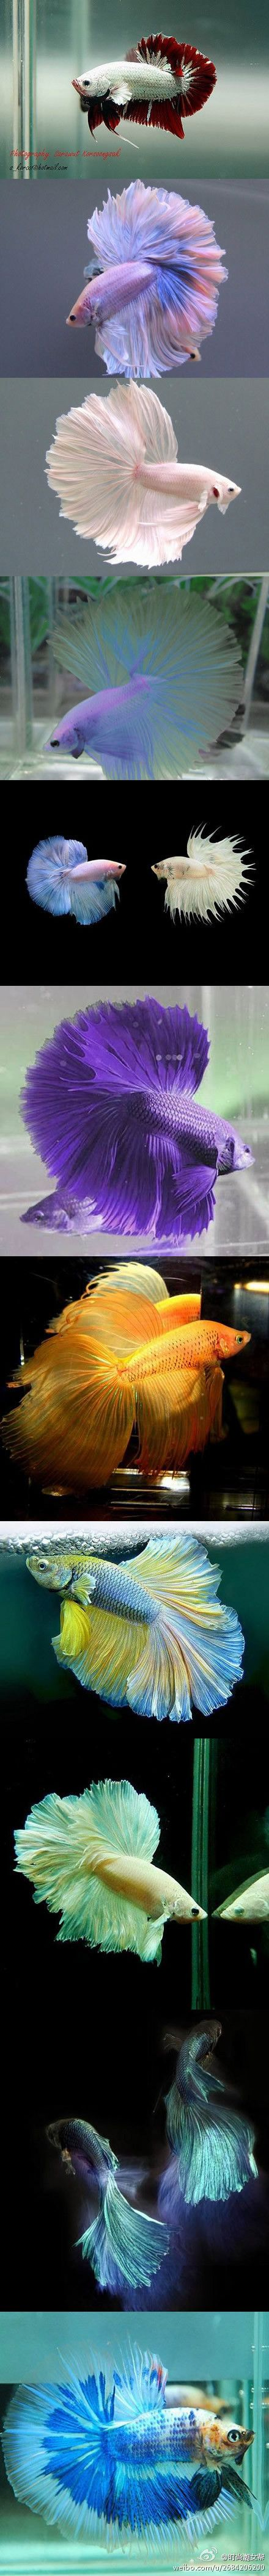 Fancy Fishies!